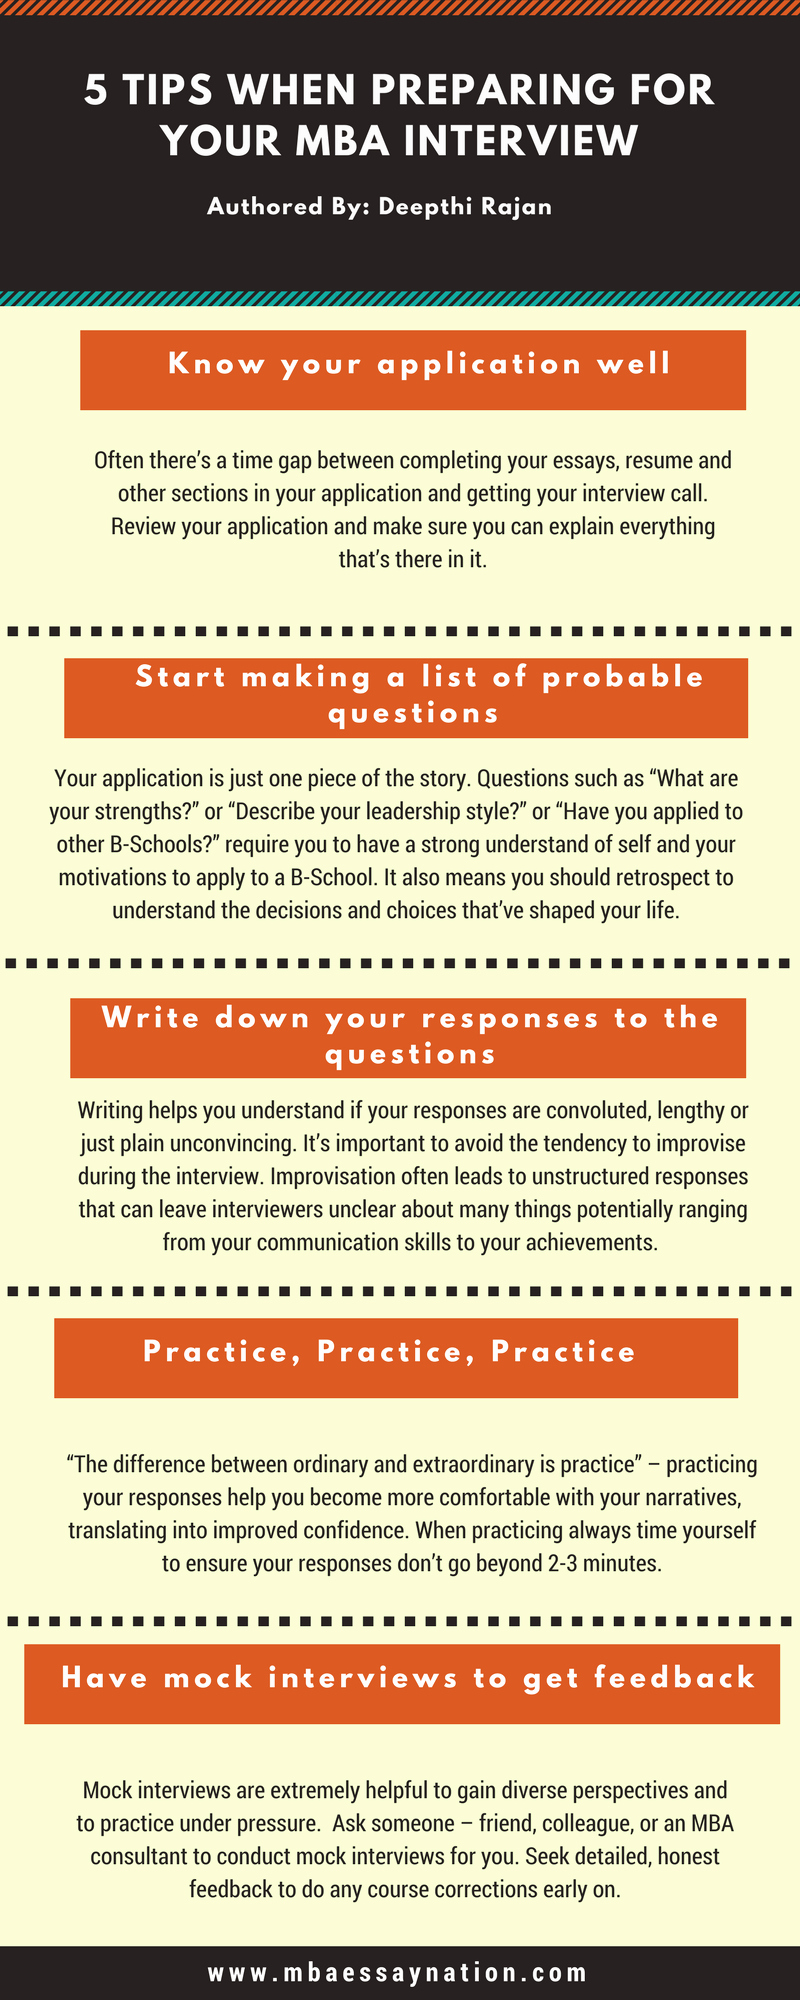 Mba Recommendation Letter Tips Best Of 5 Tips when Preparing for Your Mba Interview [infographic